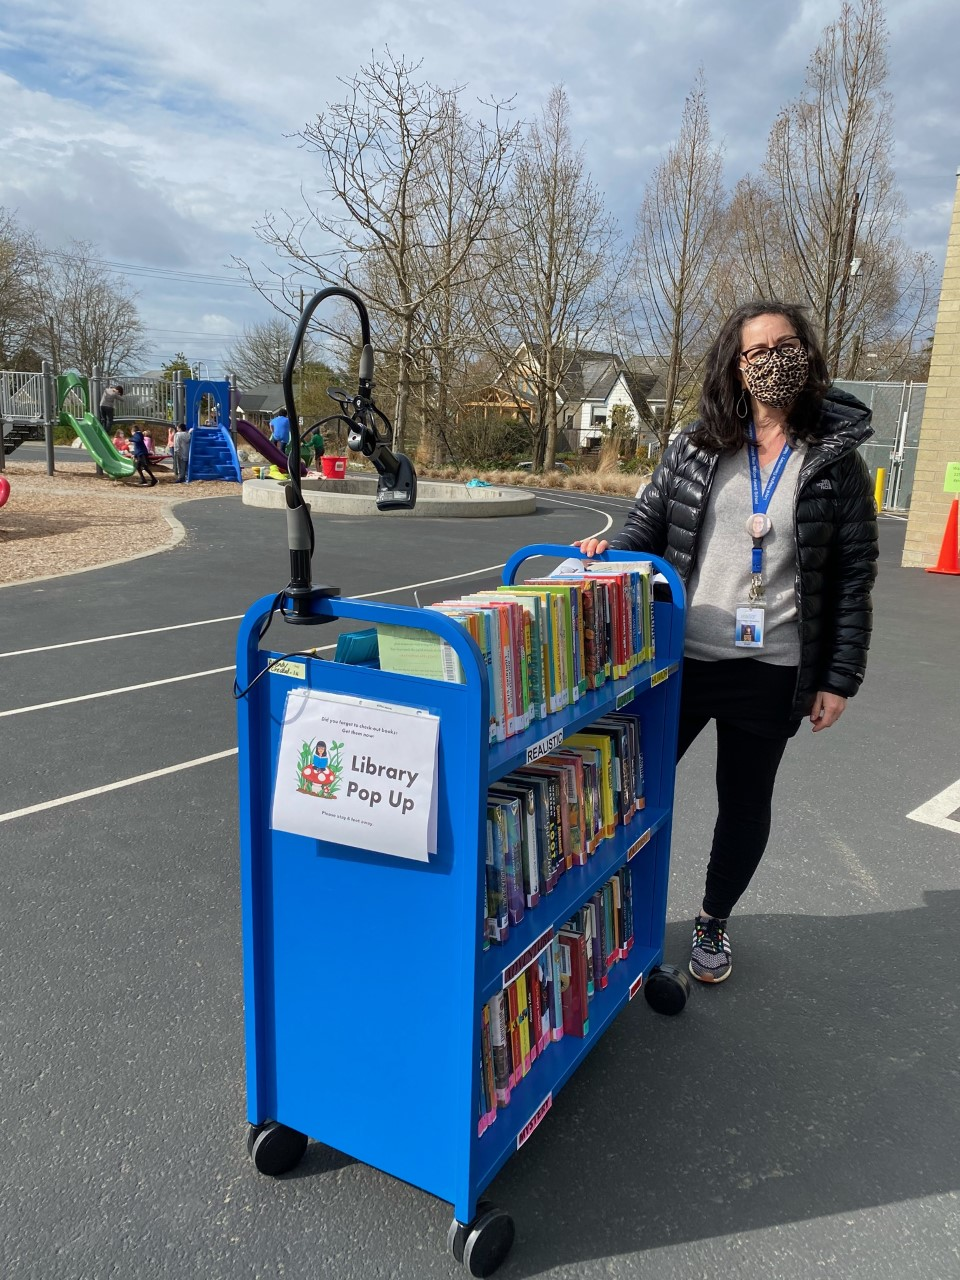 library pop up cart